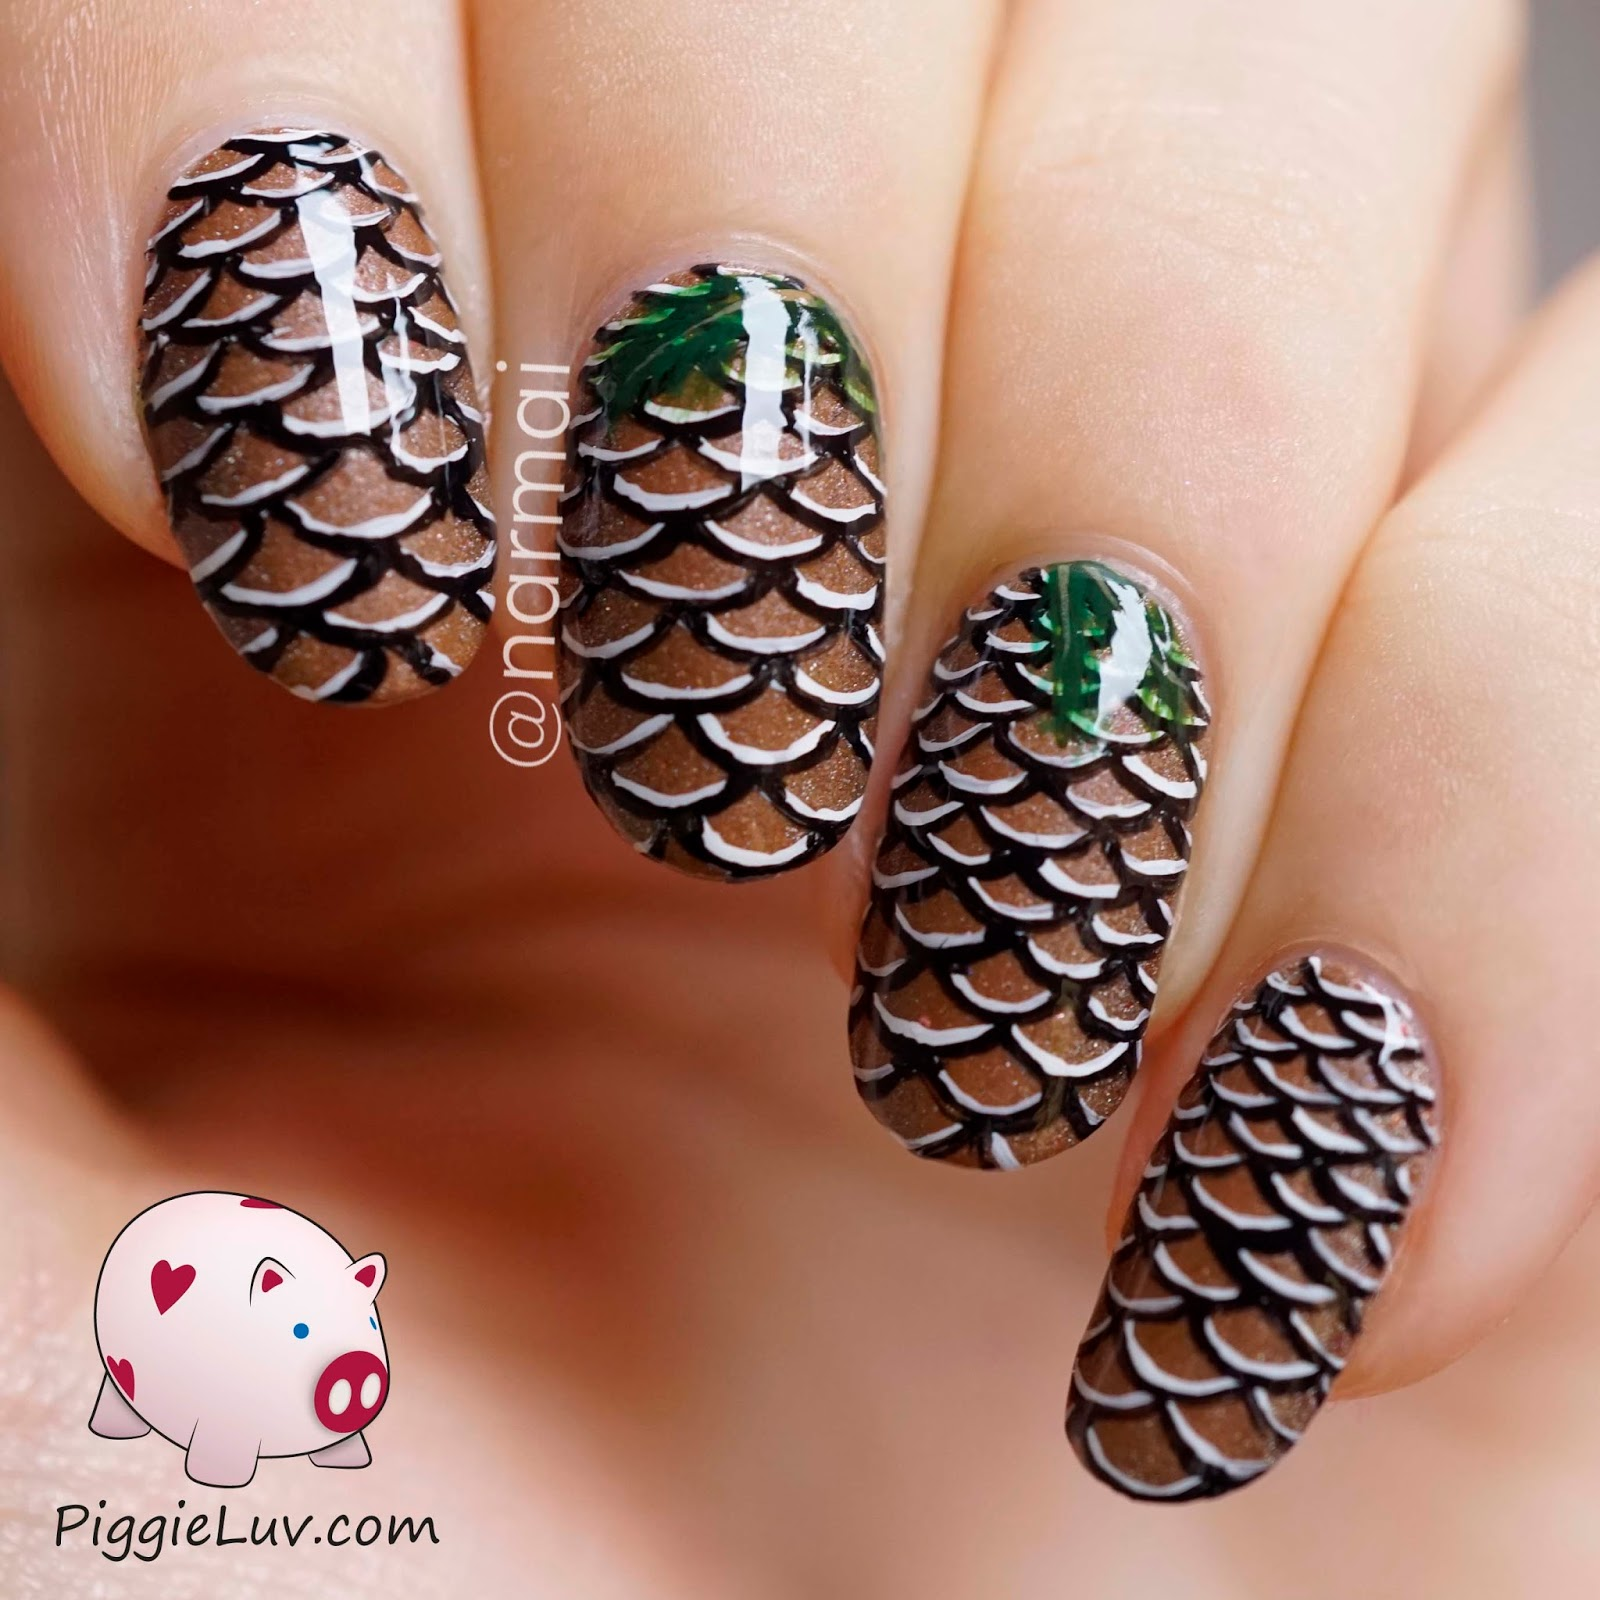 Piggieluv 2014 pine cone nail art video tutorial solutioingenieria